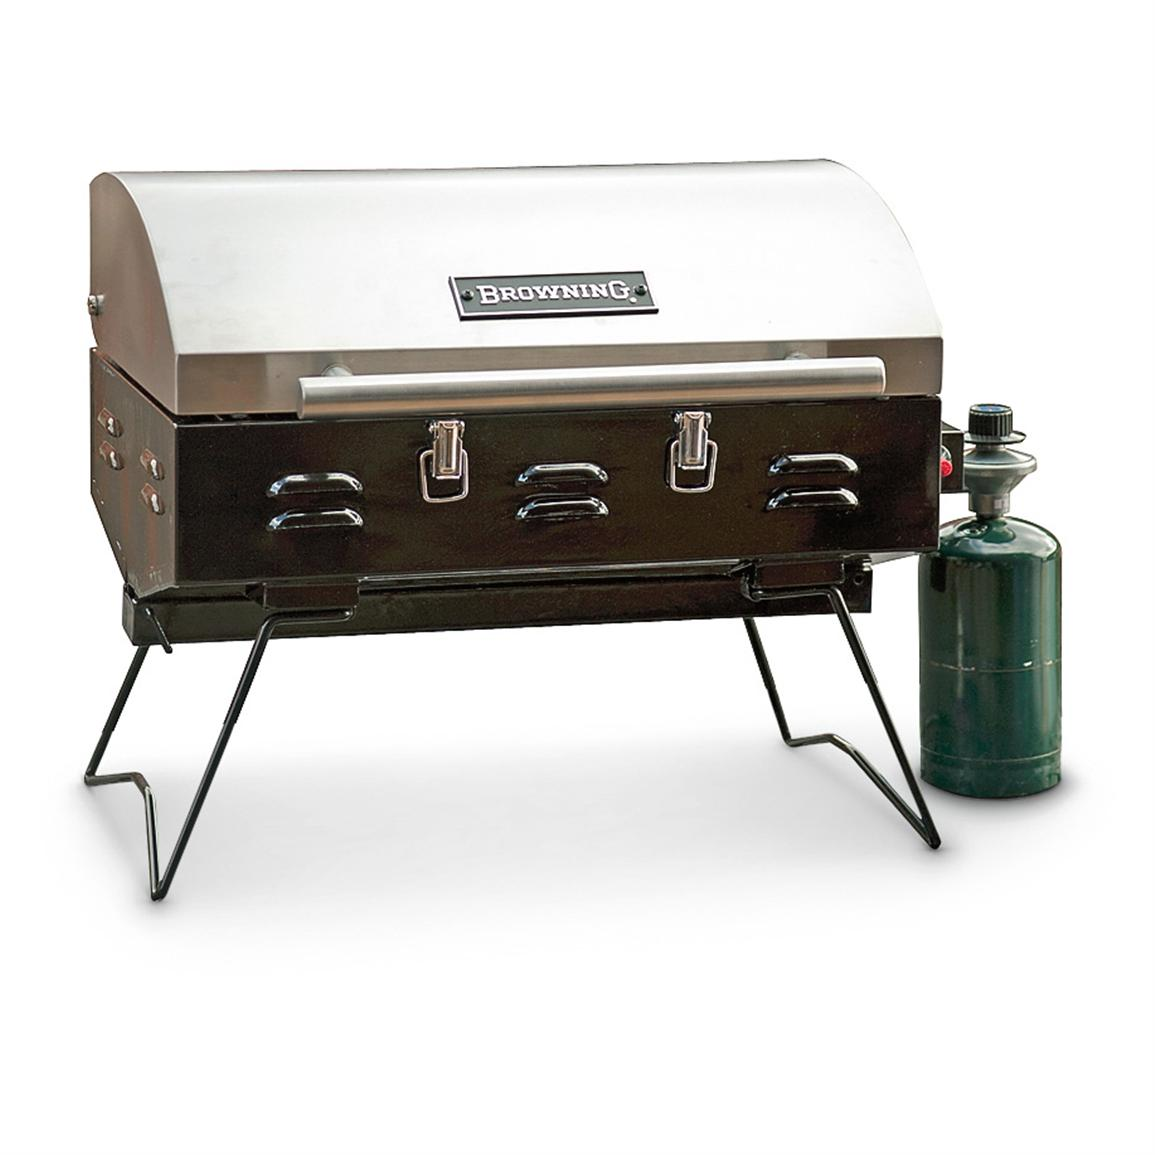 Browning® Buckmark Table Top Grill